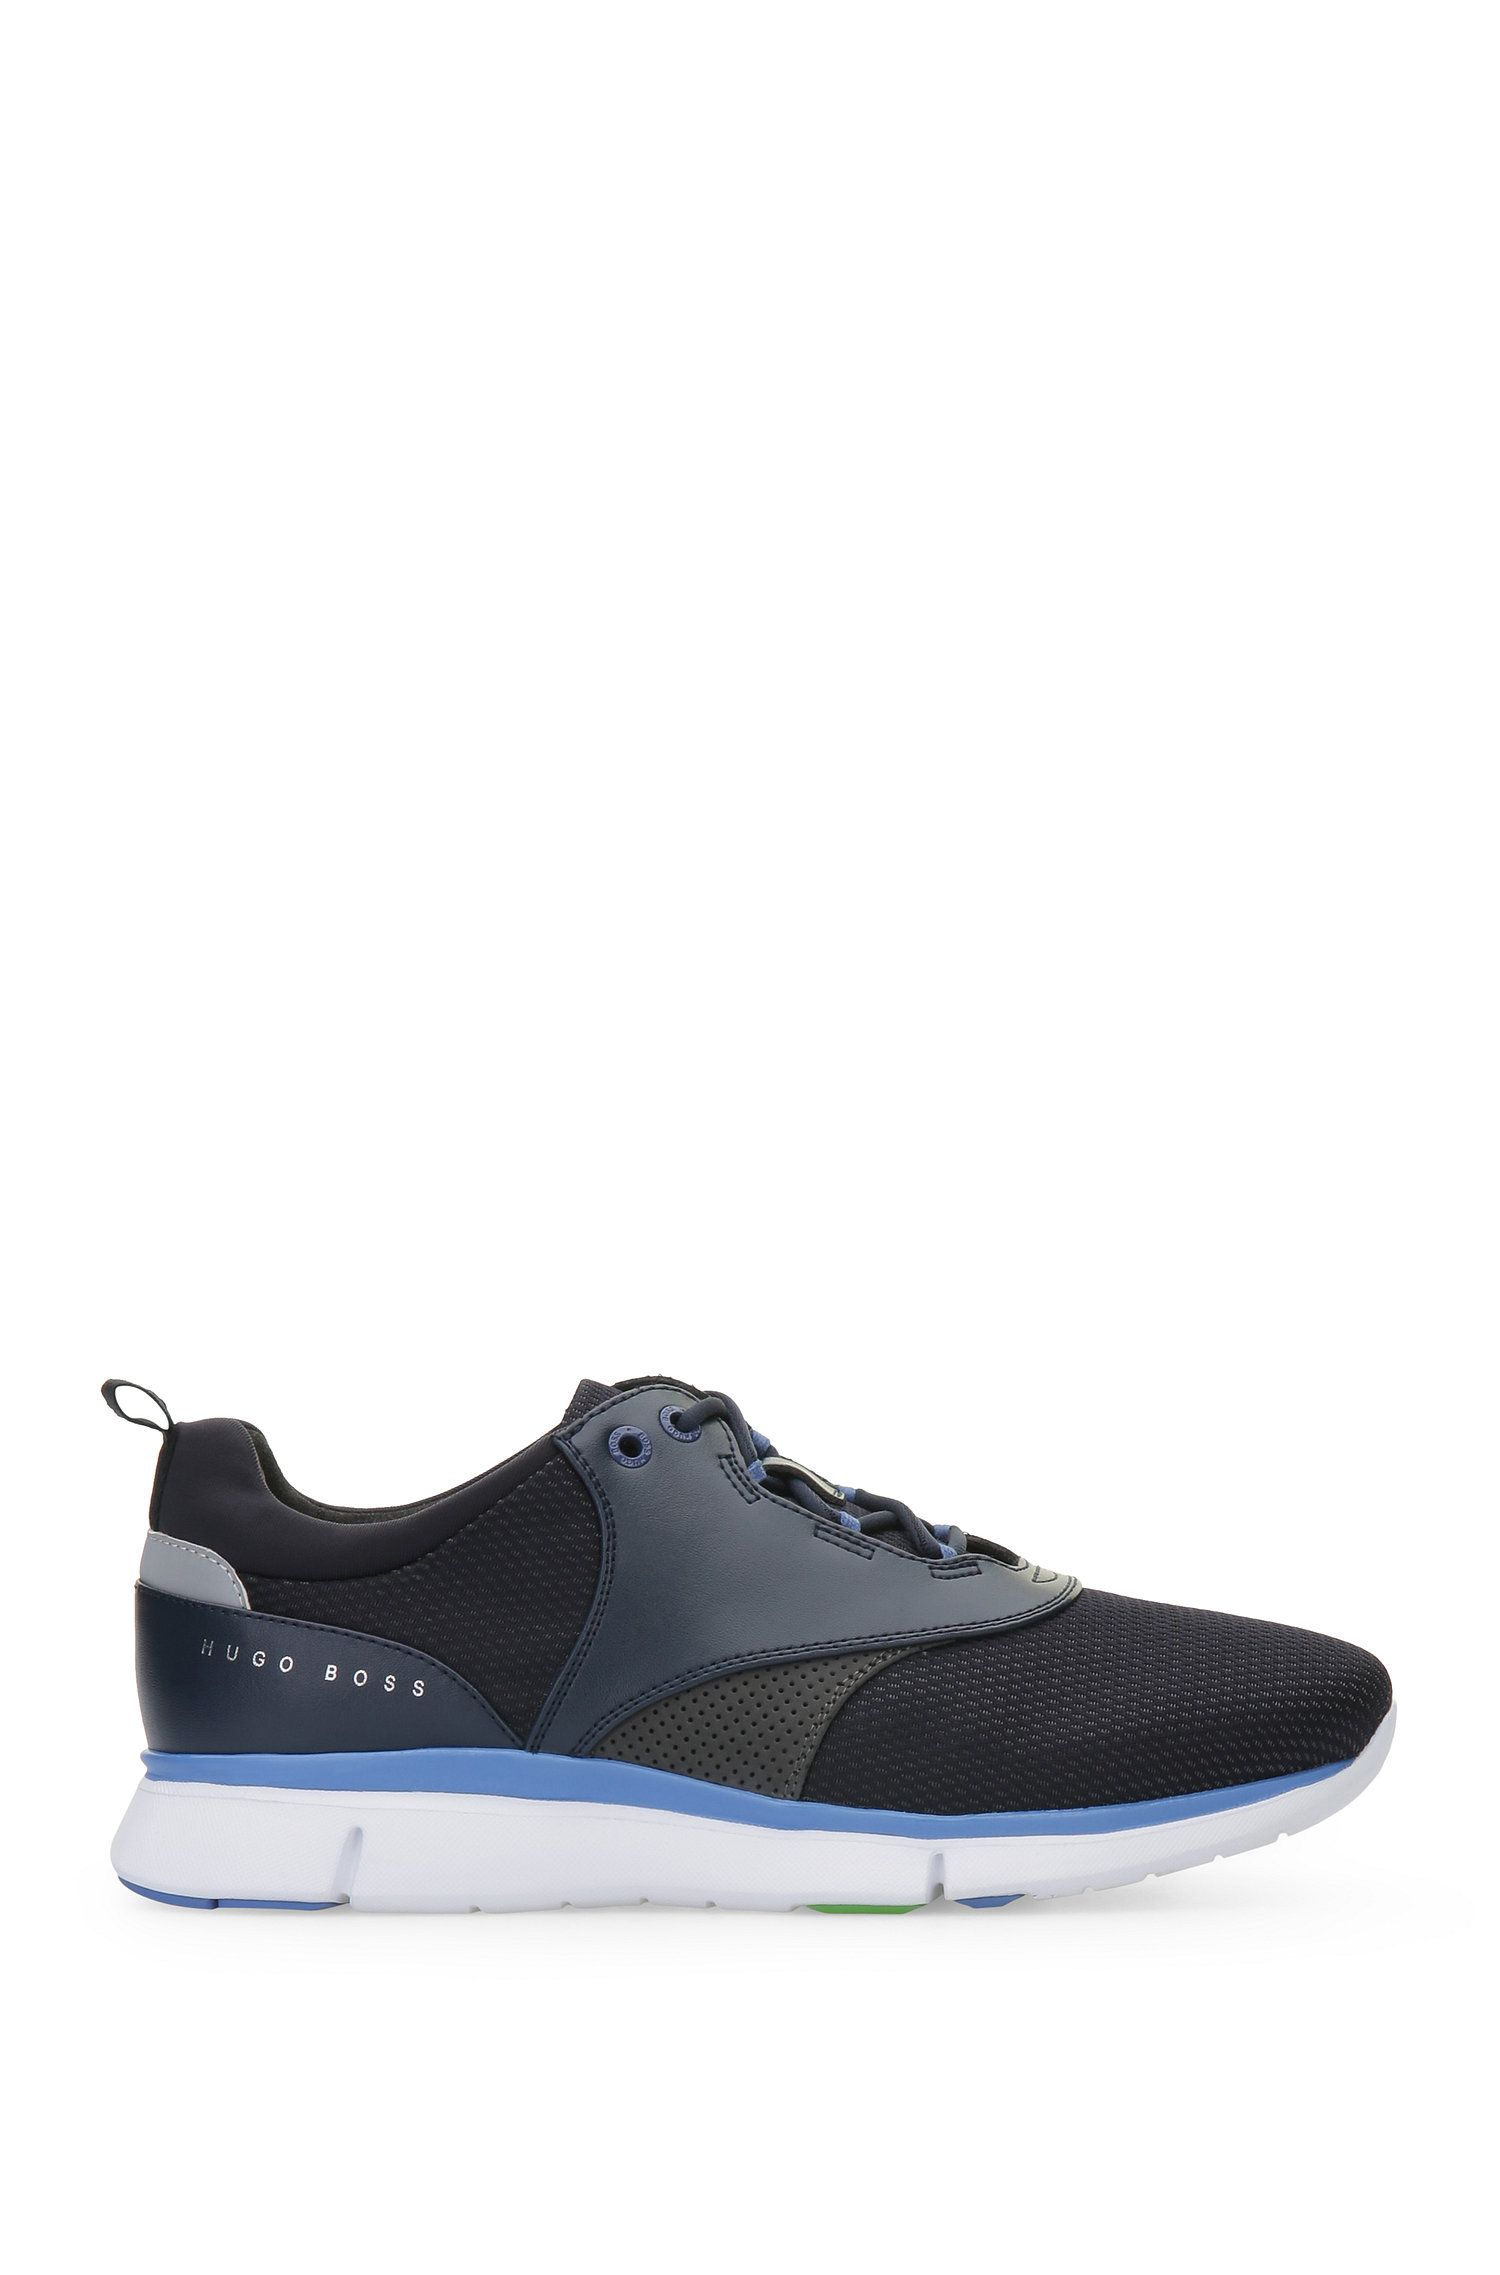 'Gym Runn Nyme' | Leather Neoprene Running Shoes